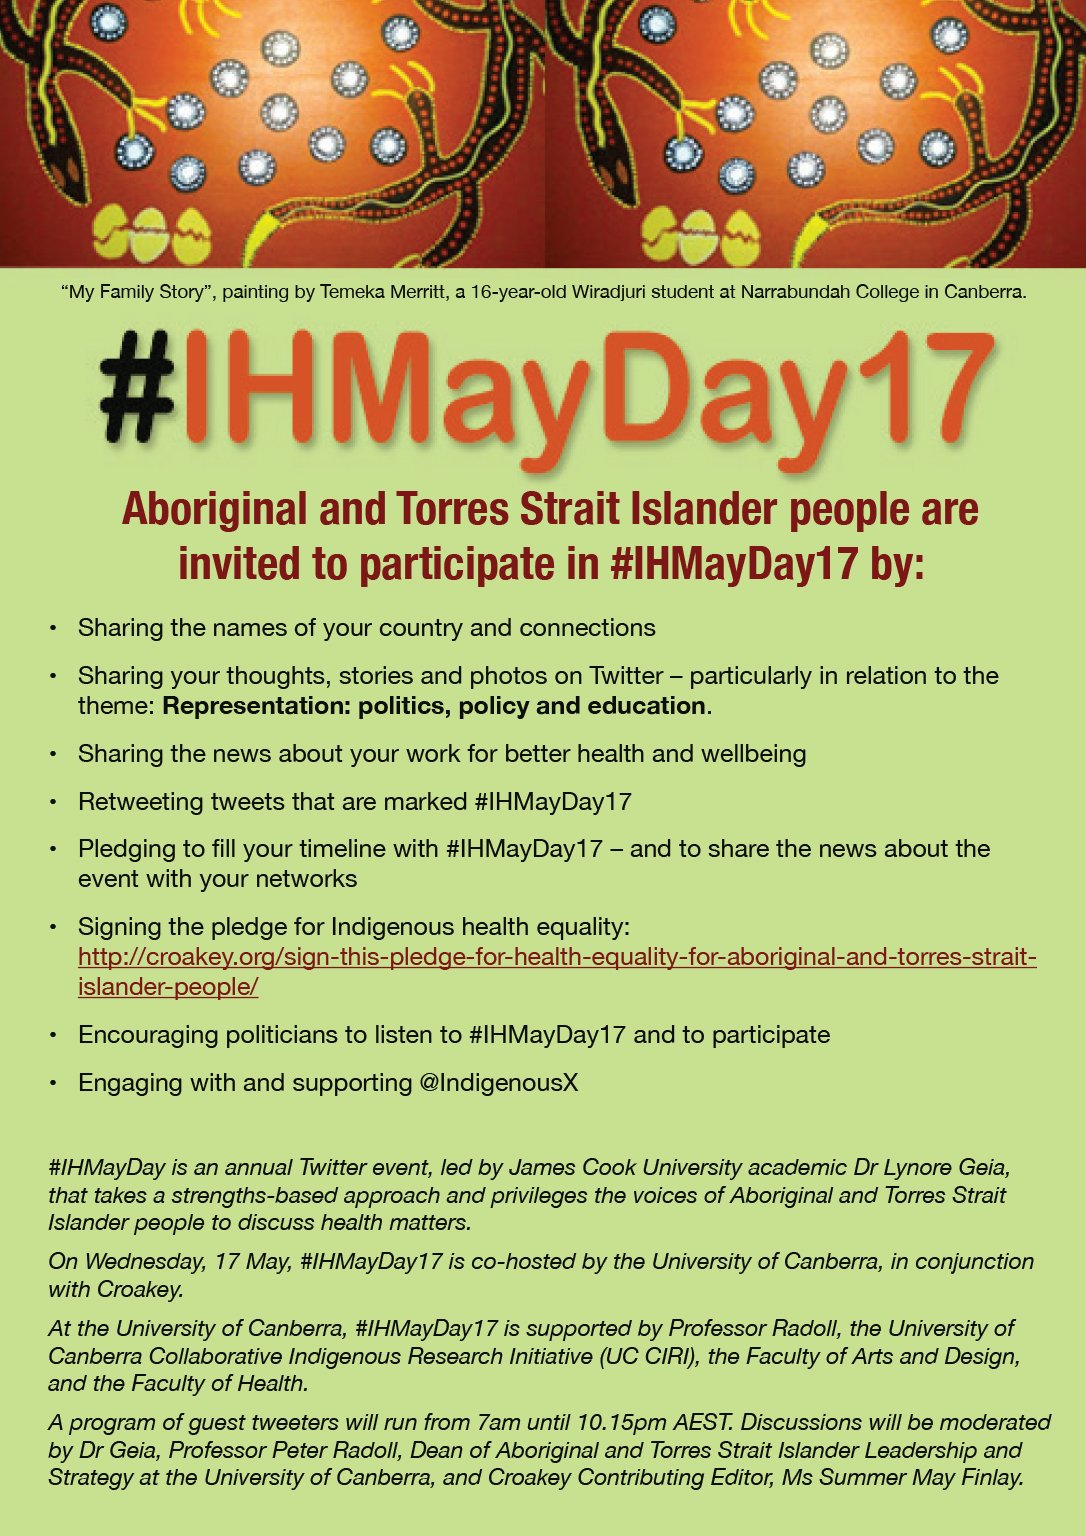 IHMayDay17_Tweeps